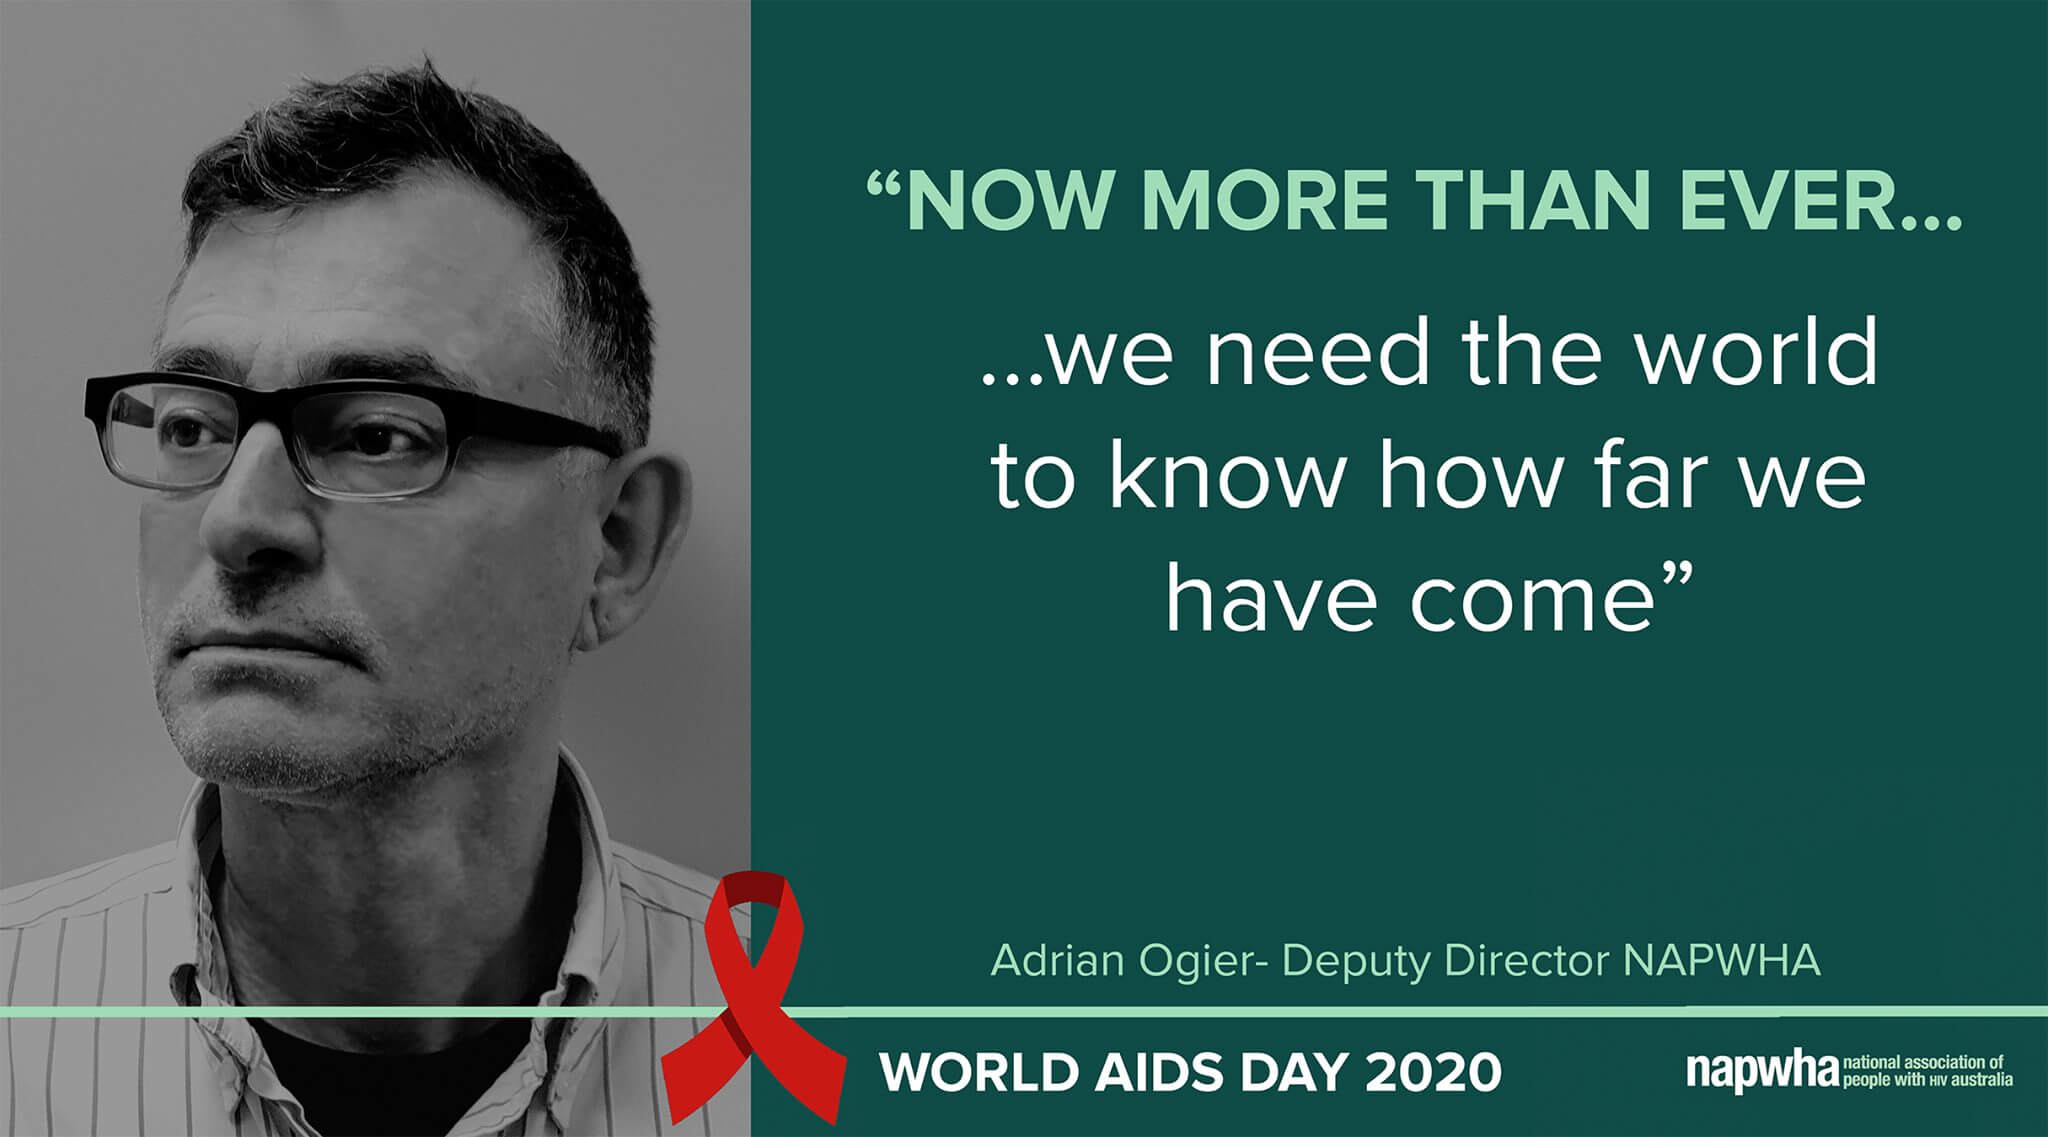 Adrian Ogier, NAPWHA Deputy Director provides a World AIDS Day 2020 message